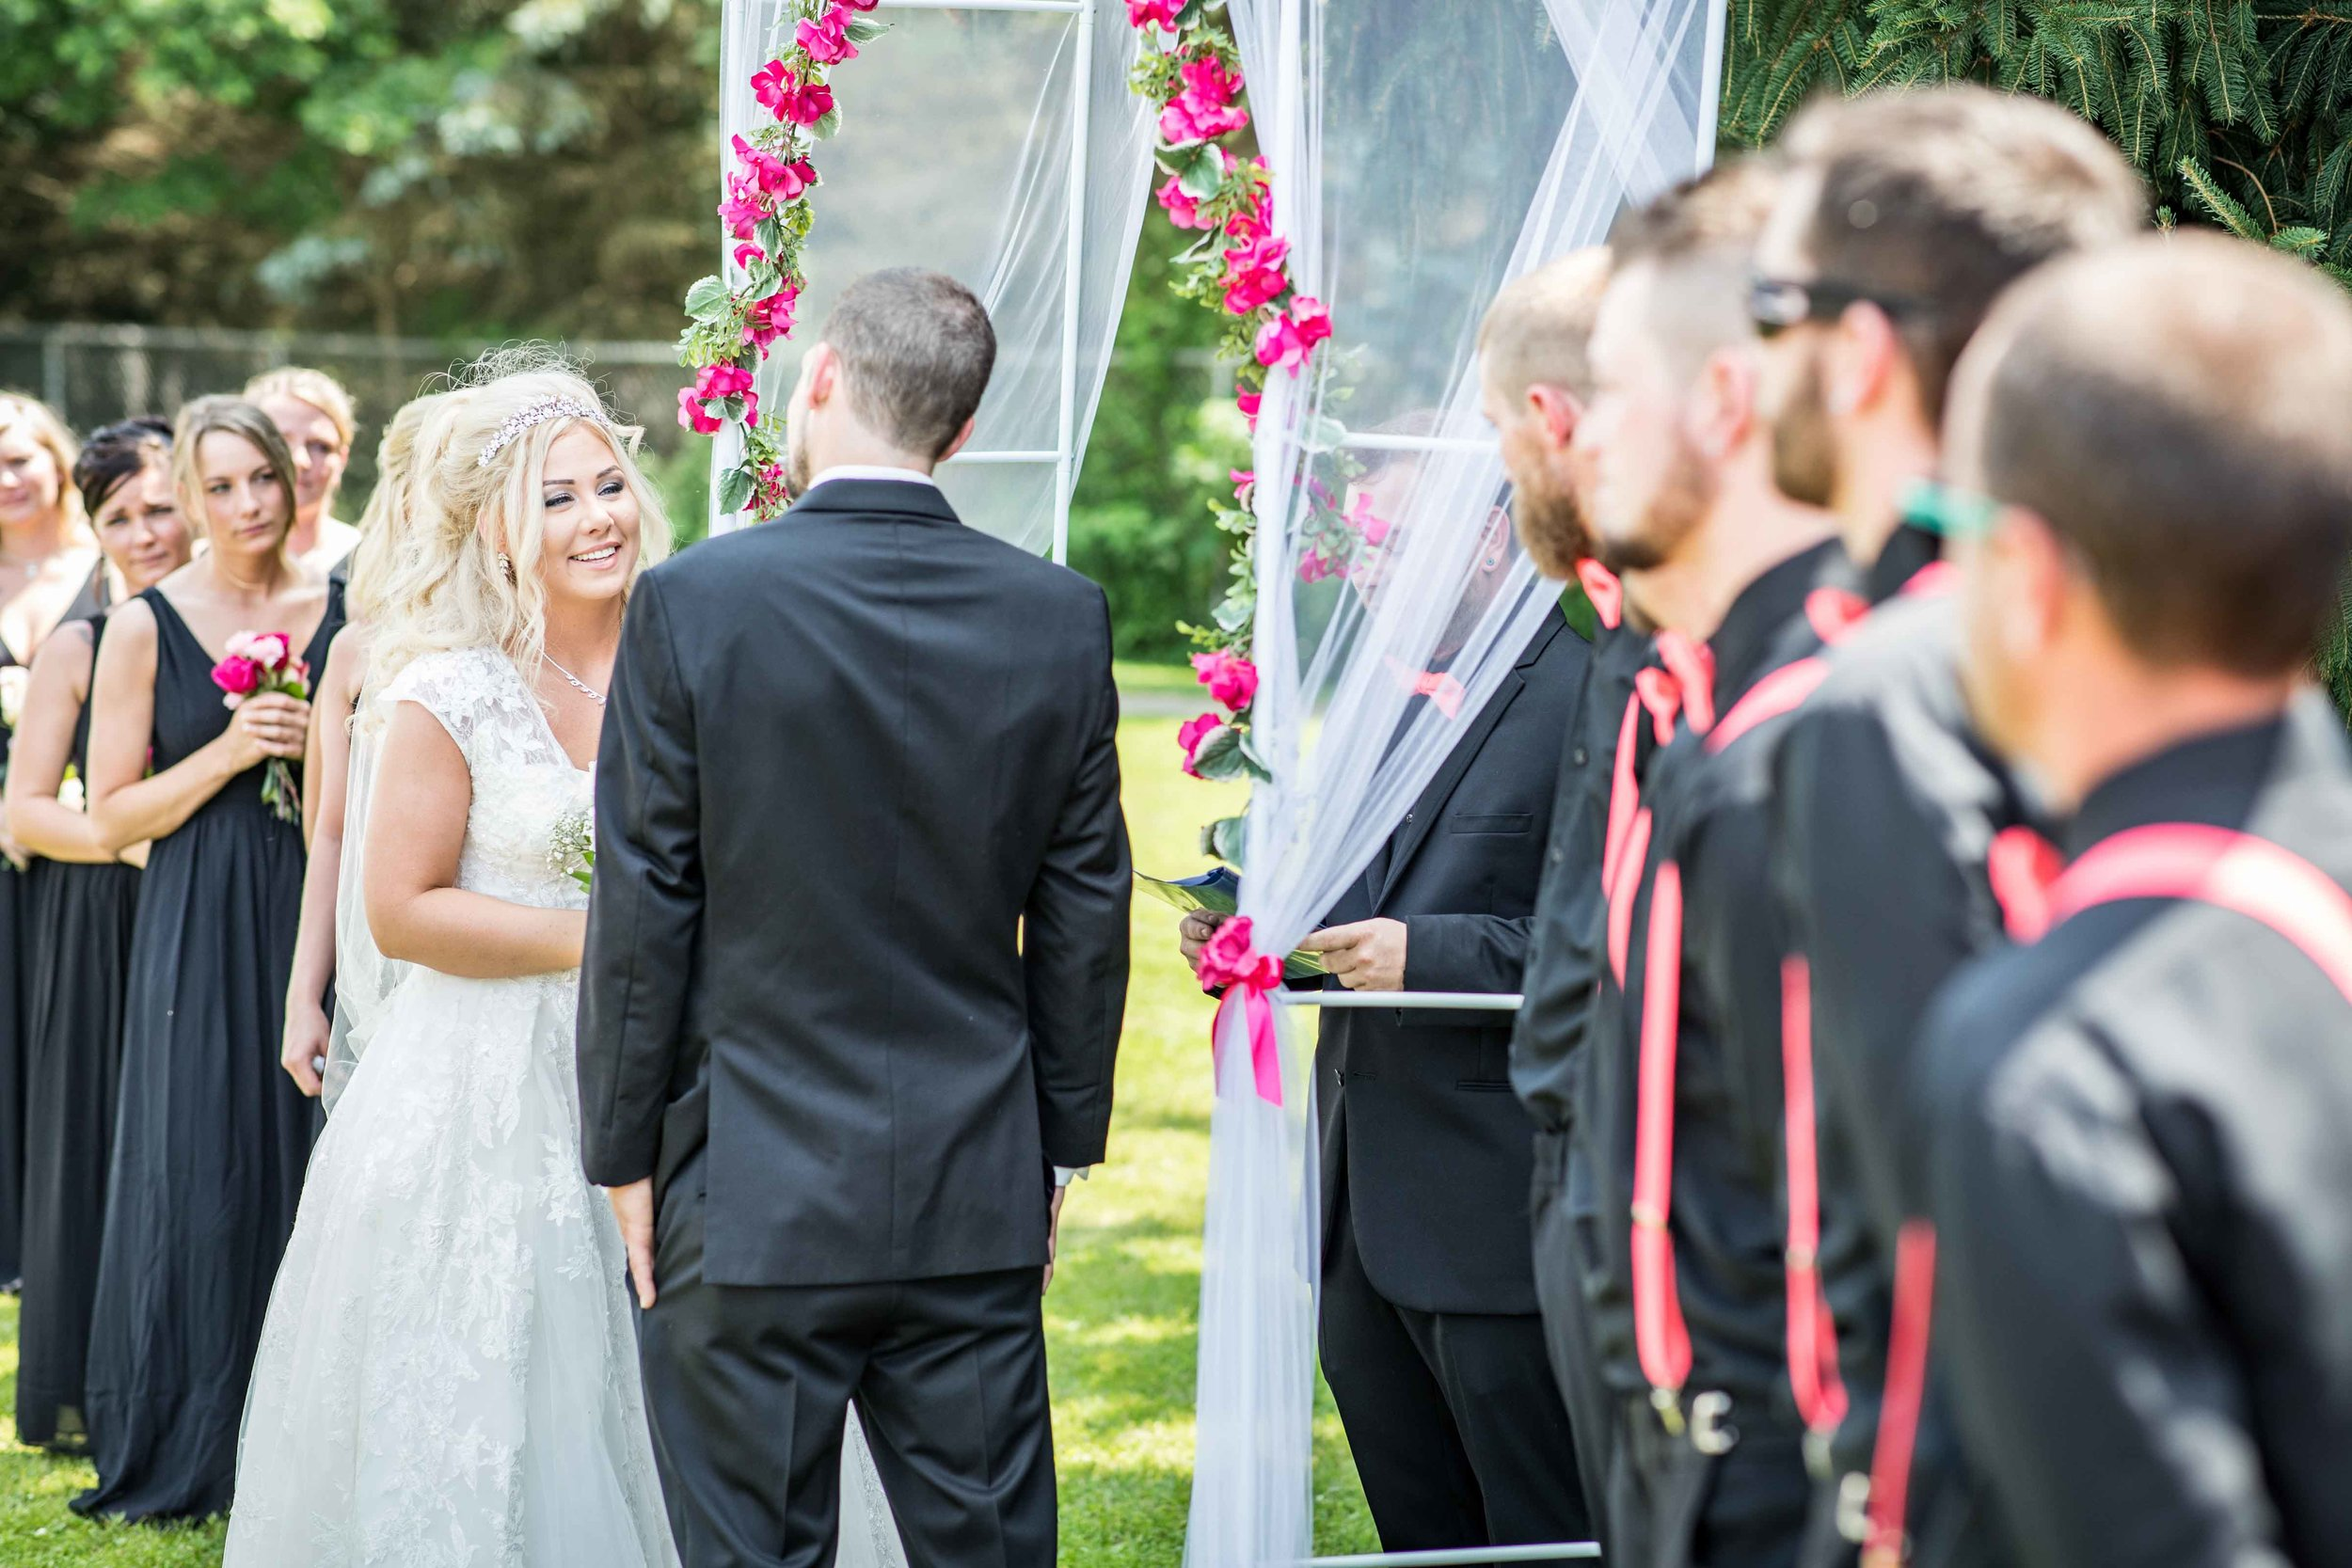 She listens and smiles as he says his vows